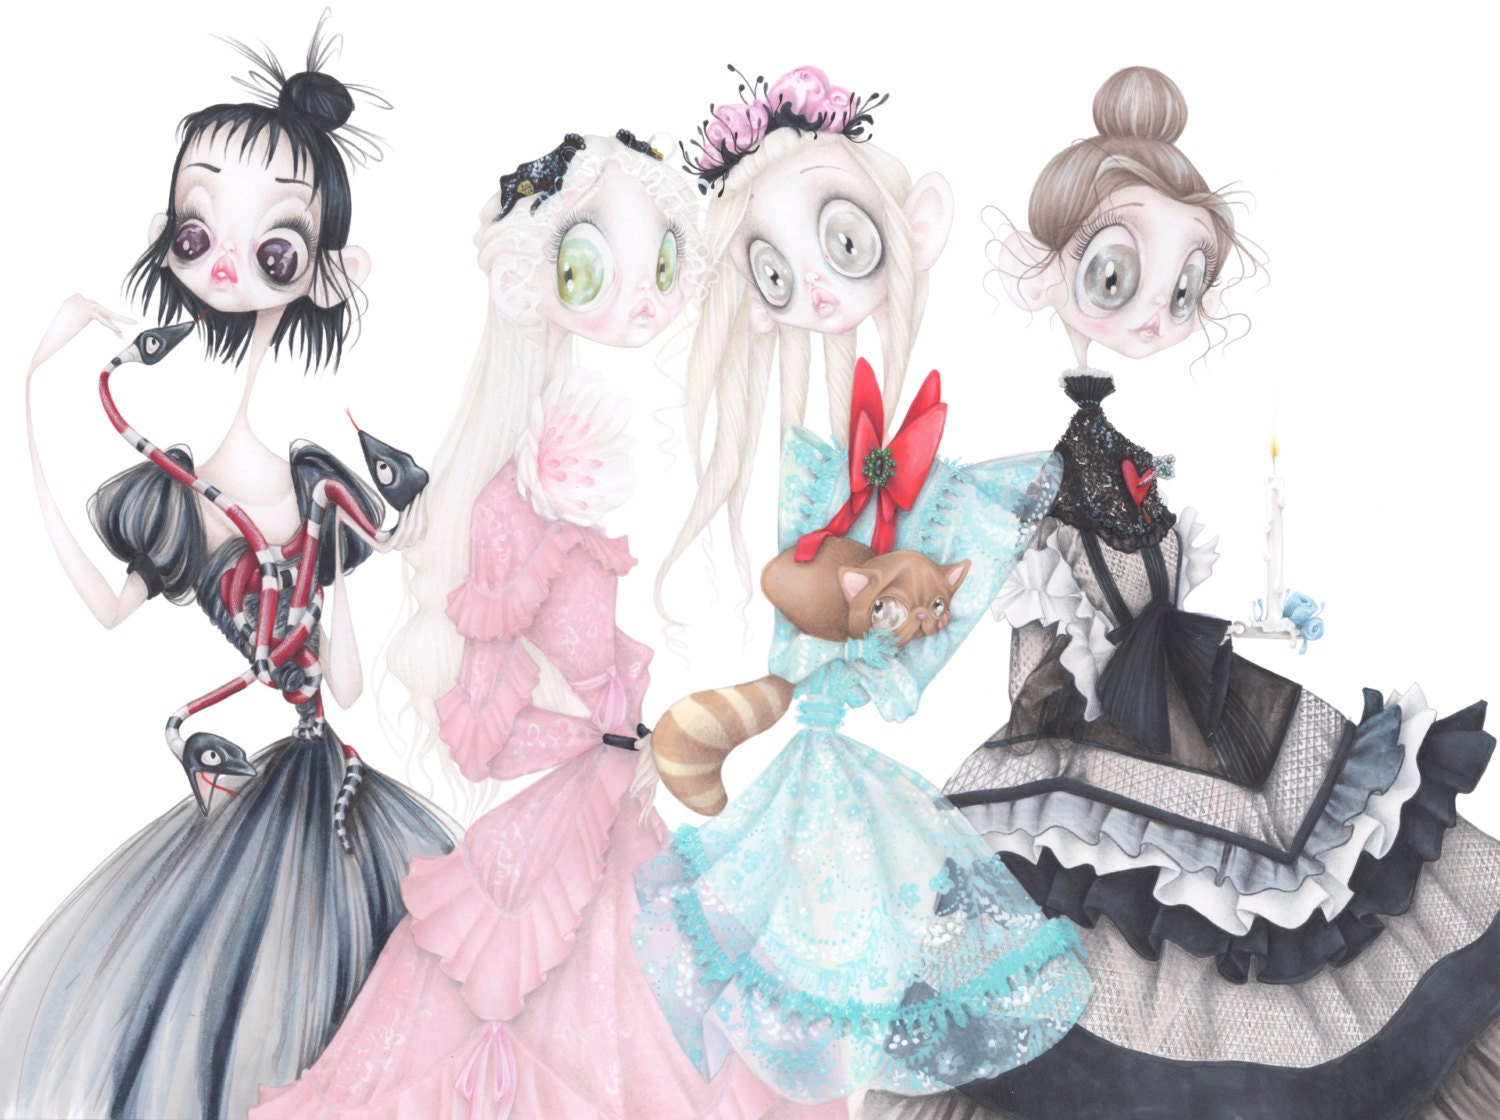 tim burton gucci fashion illustration beetlejuice corpse bride